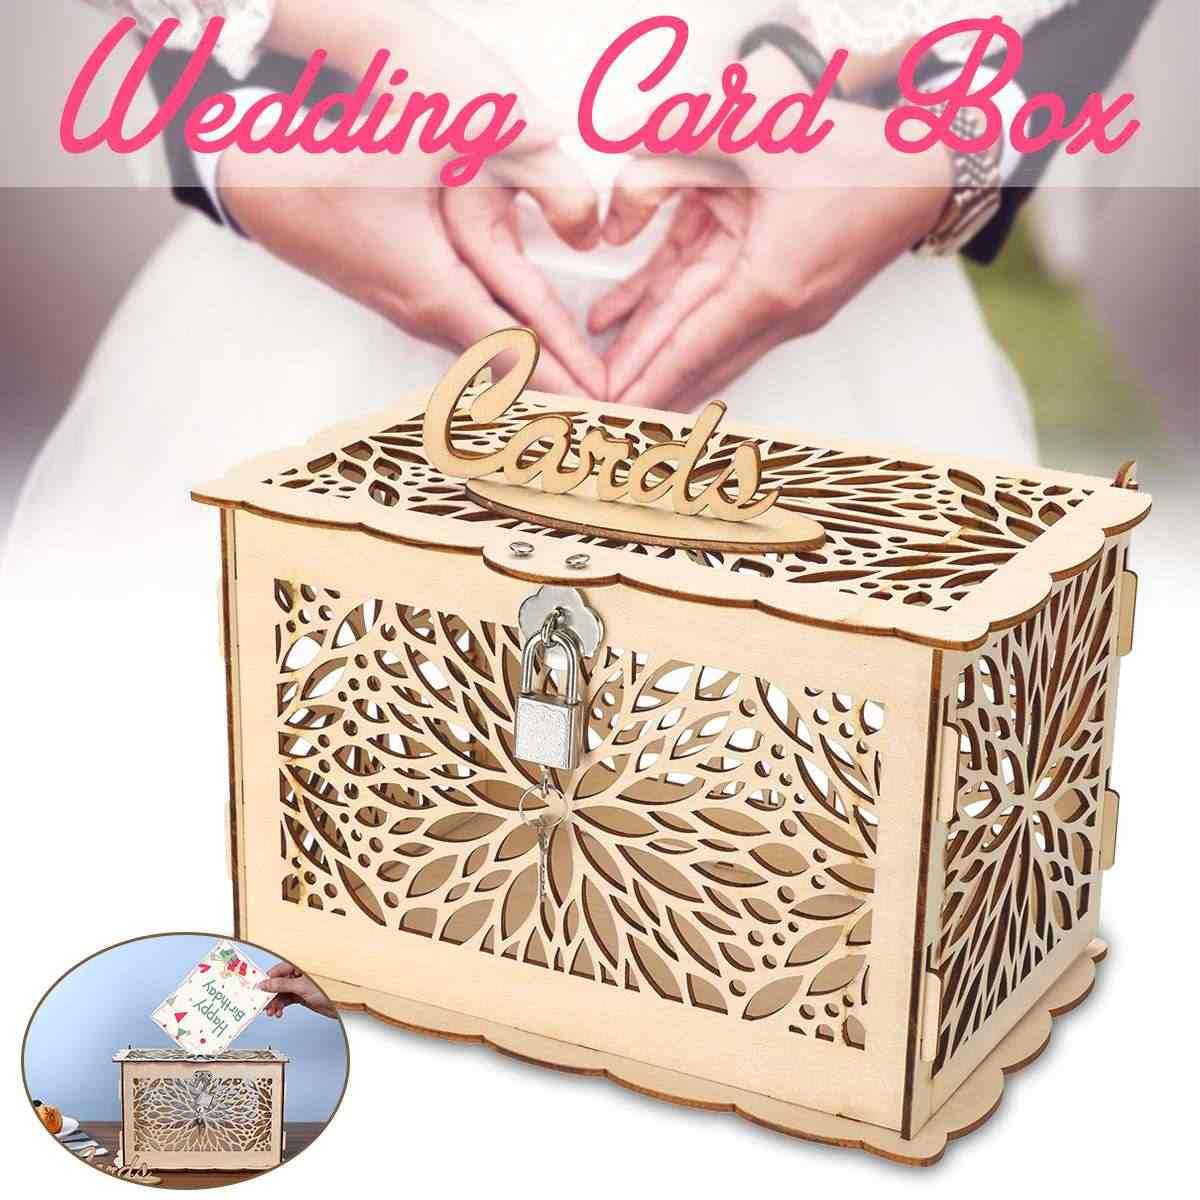 Rustic Wedding Card Box DIY Wedding Gift Card Holder Wooden Money Case Supplies for Birthday Party Baby Shower Decoration+Lock